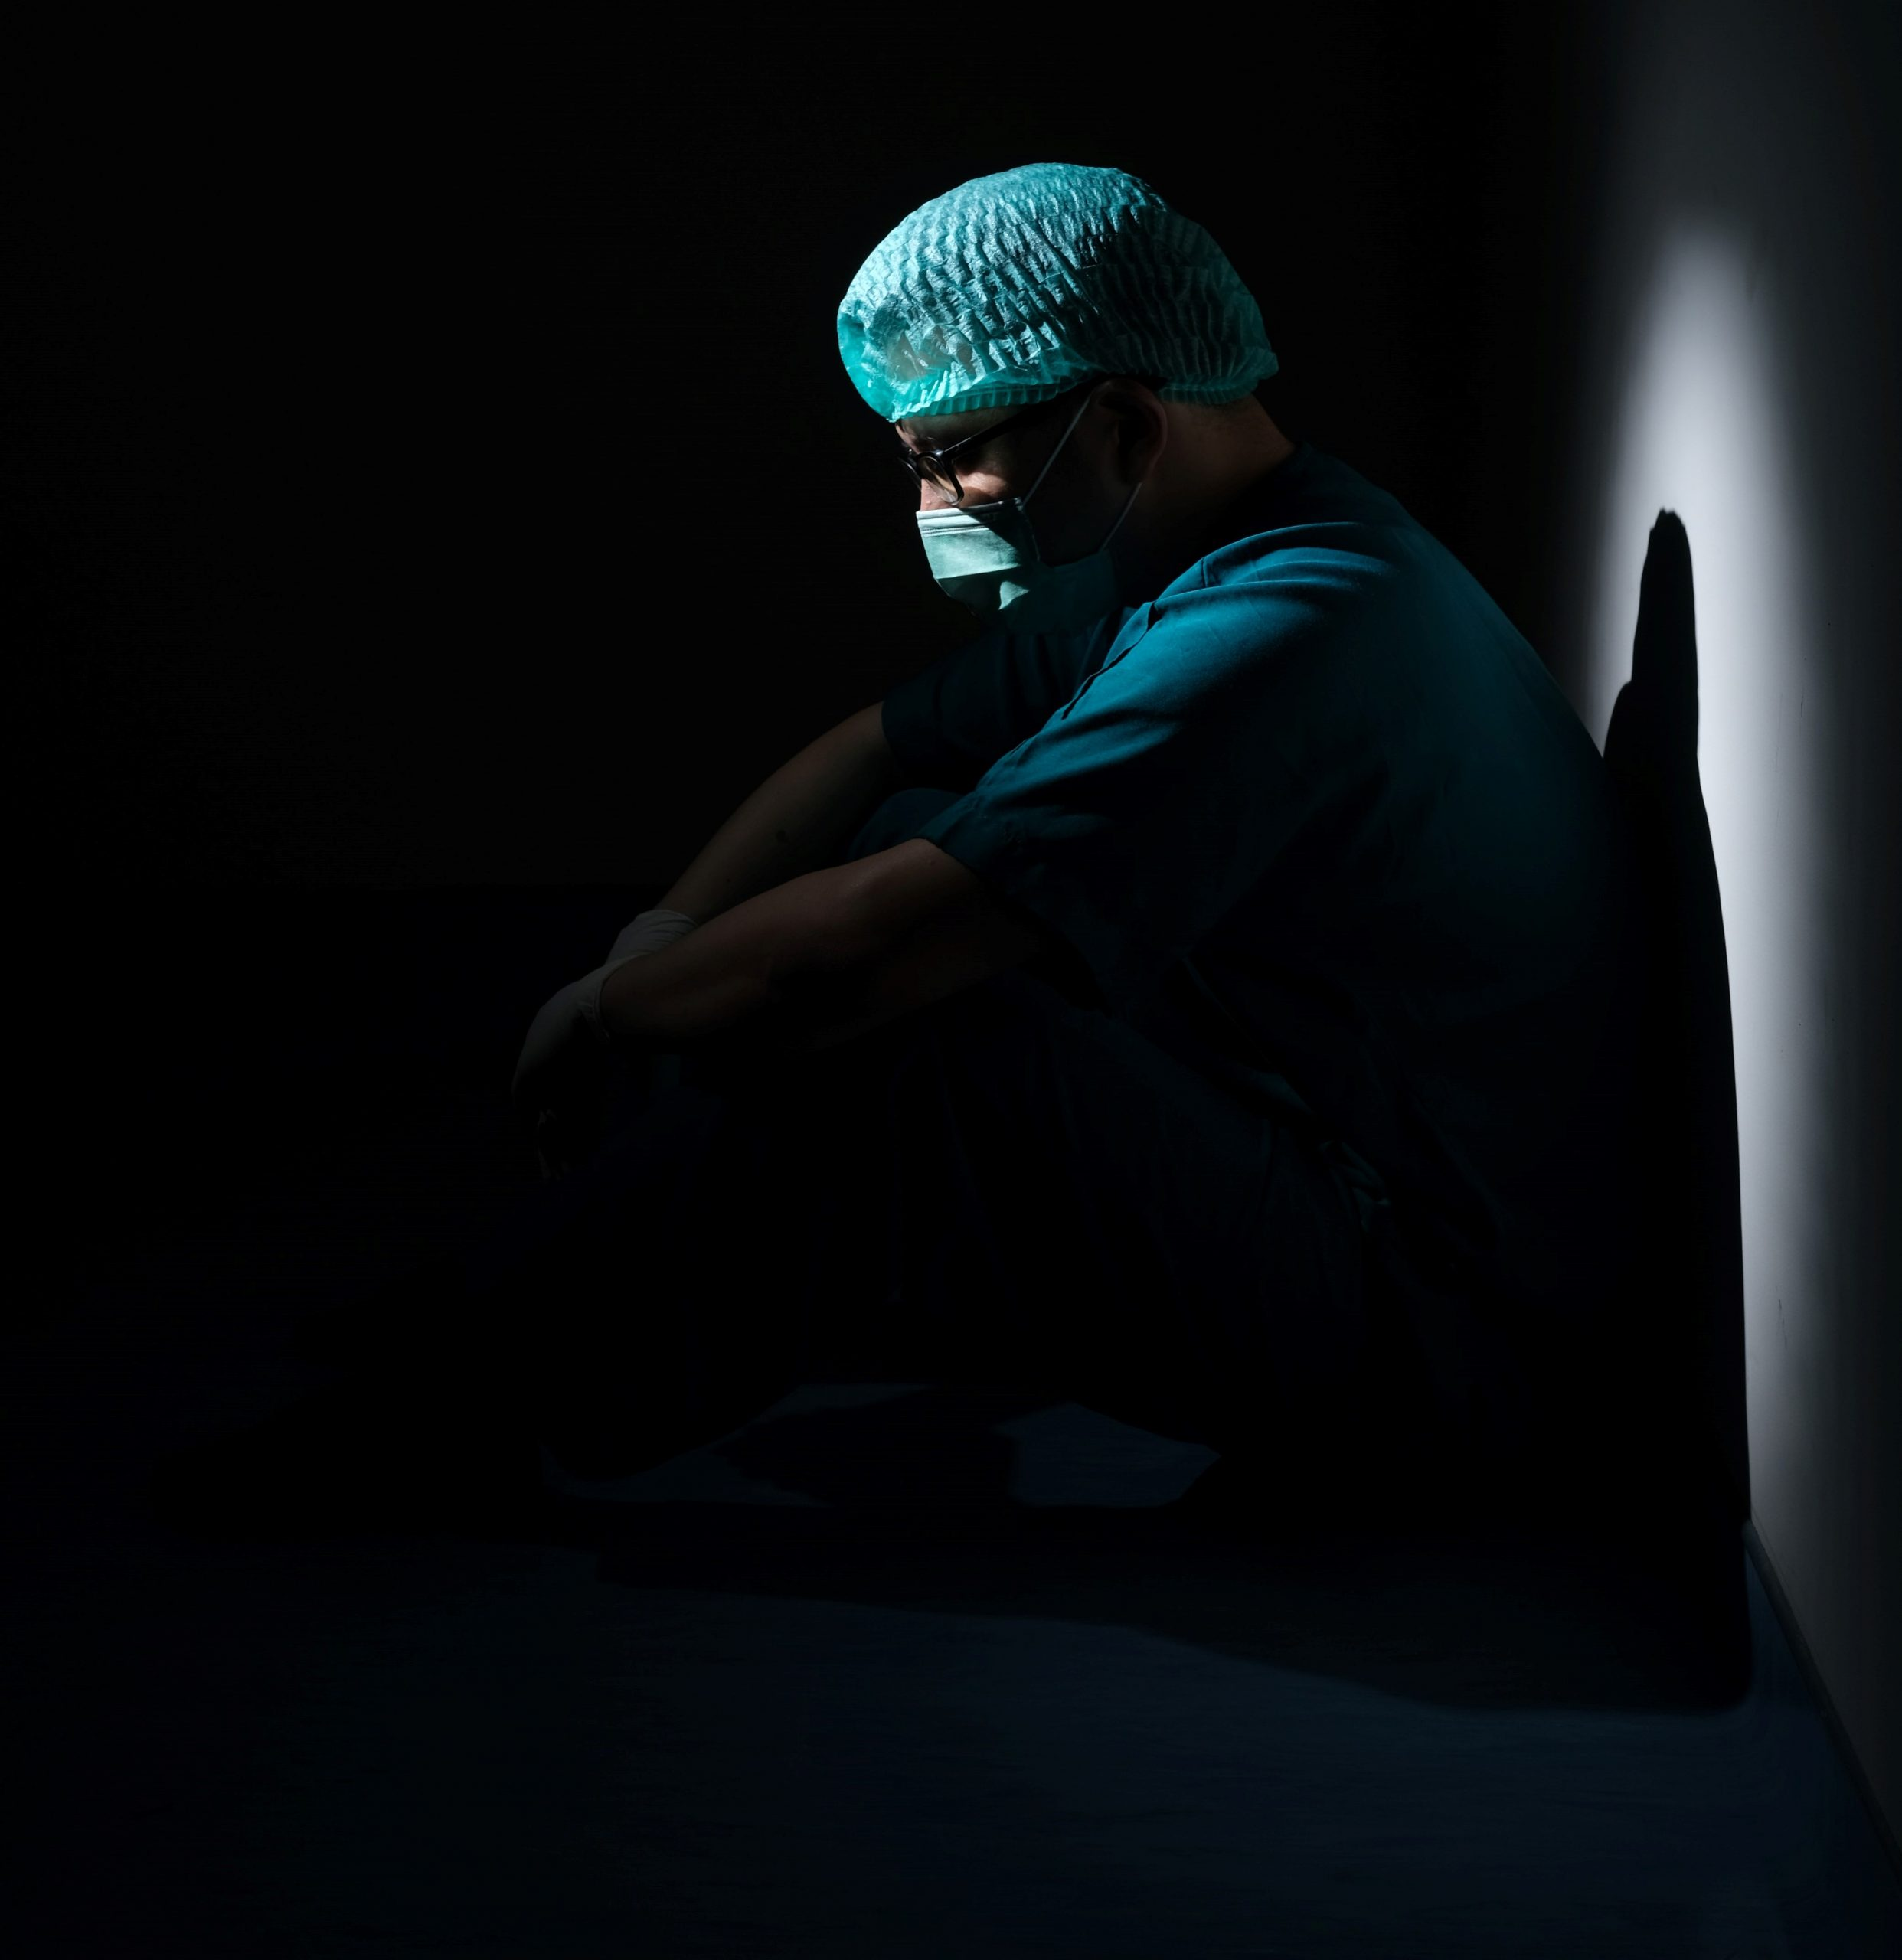 A photo of a surgeon in the shadows looking forlorn